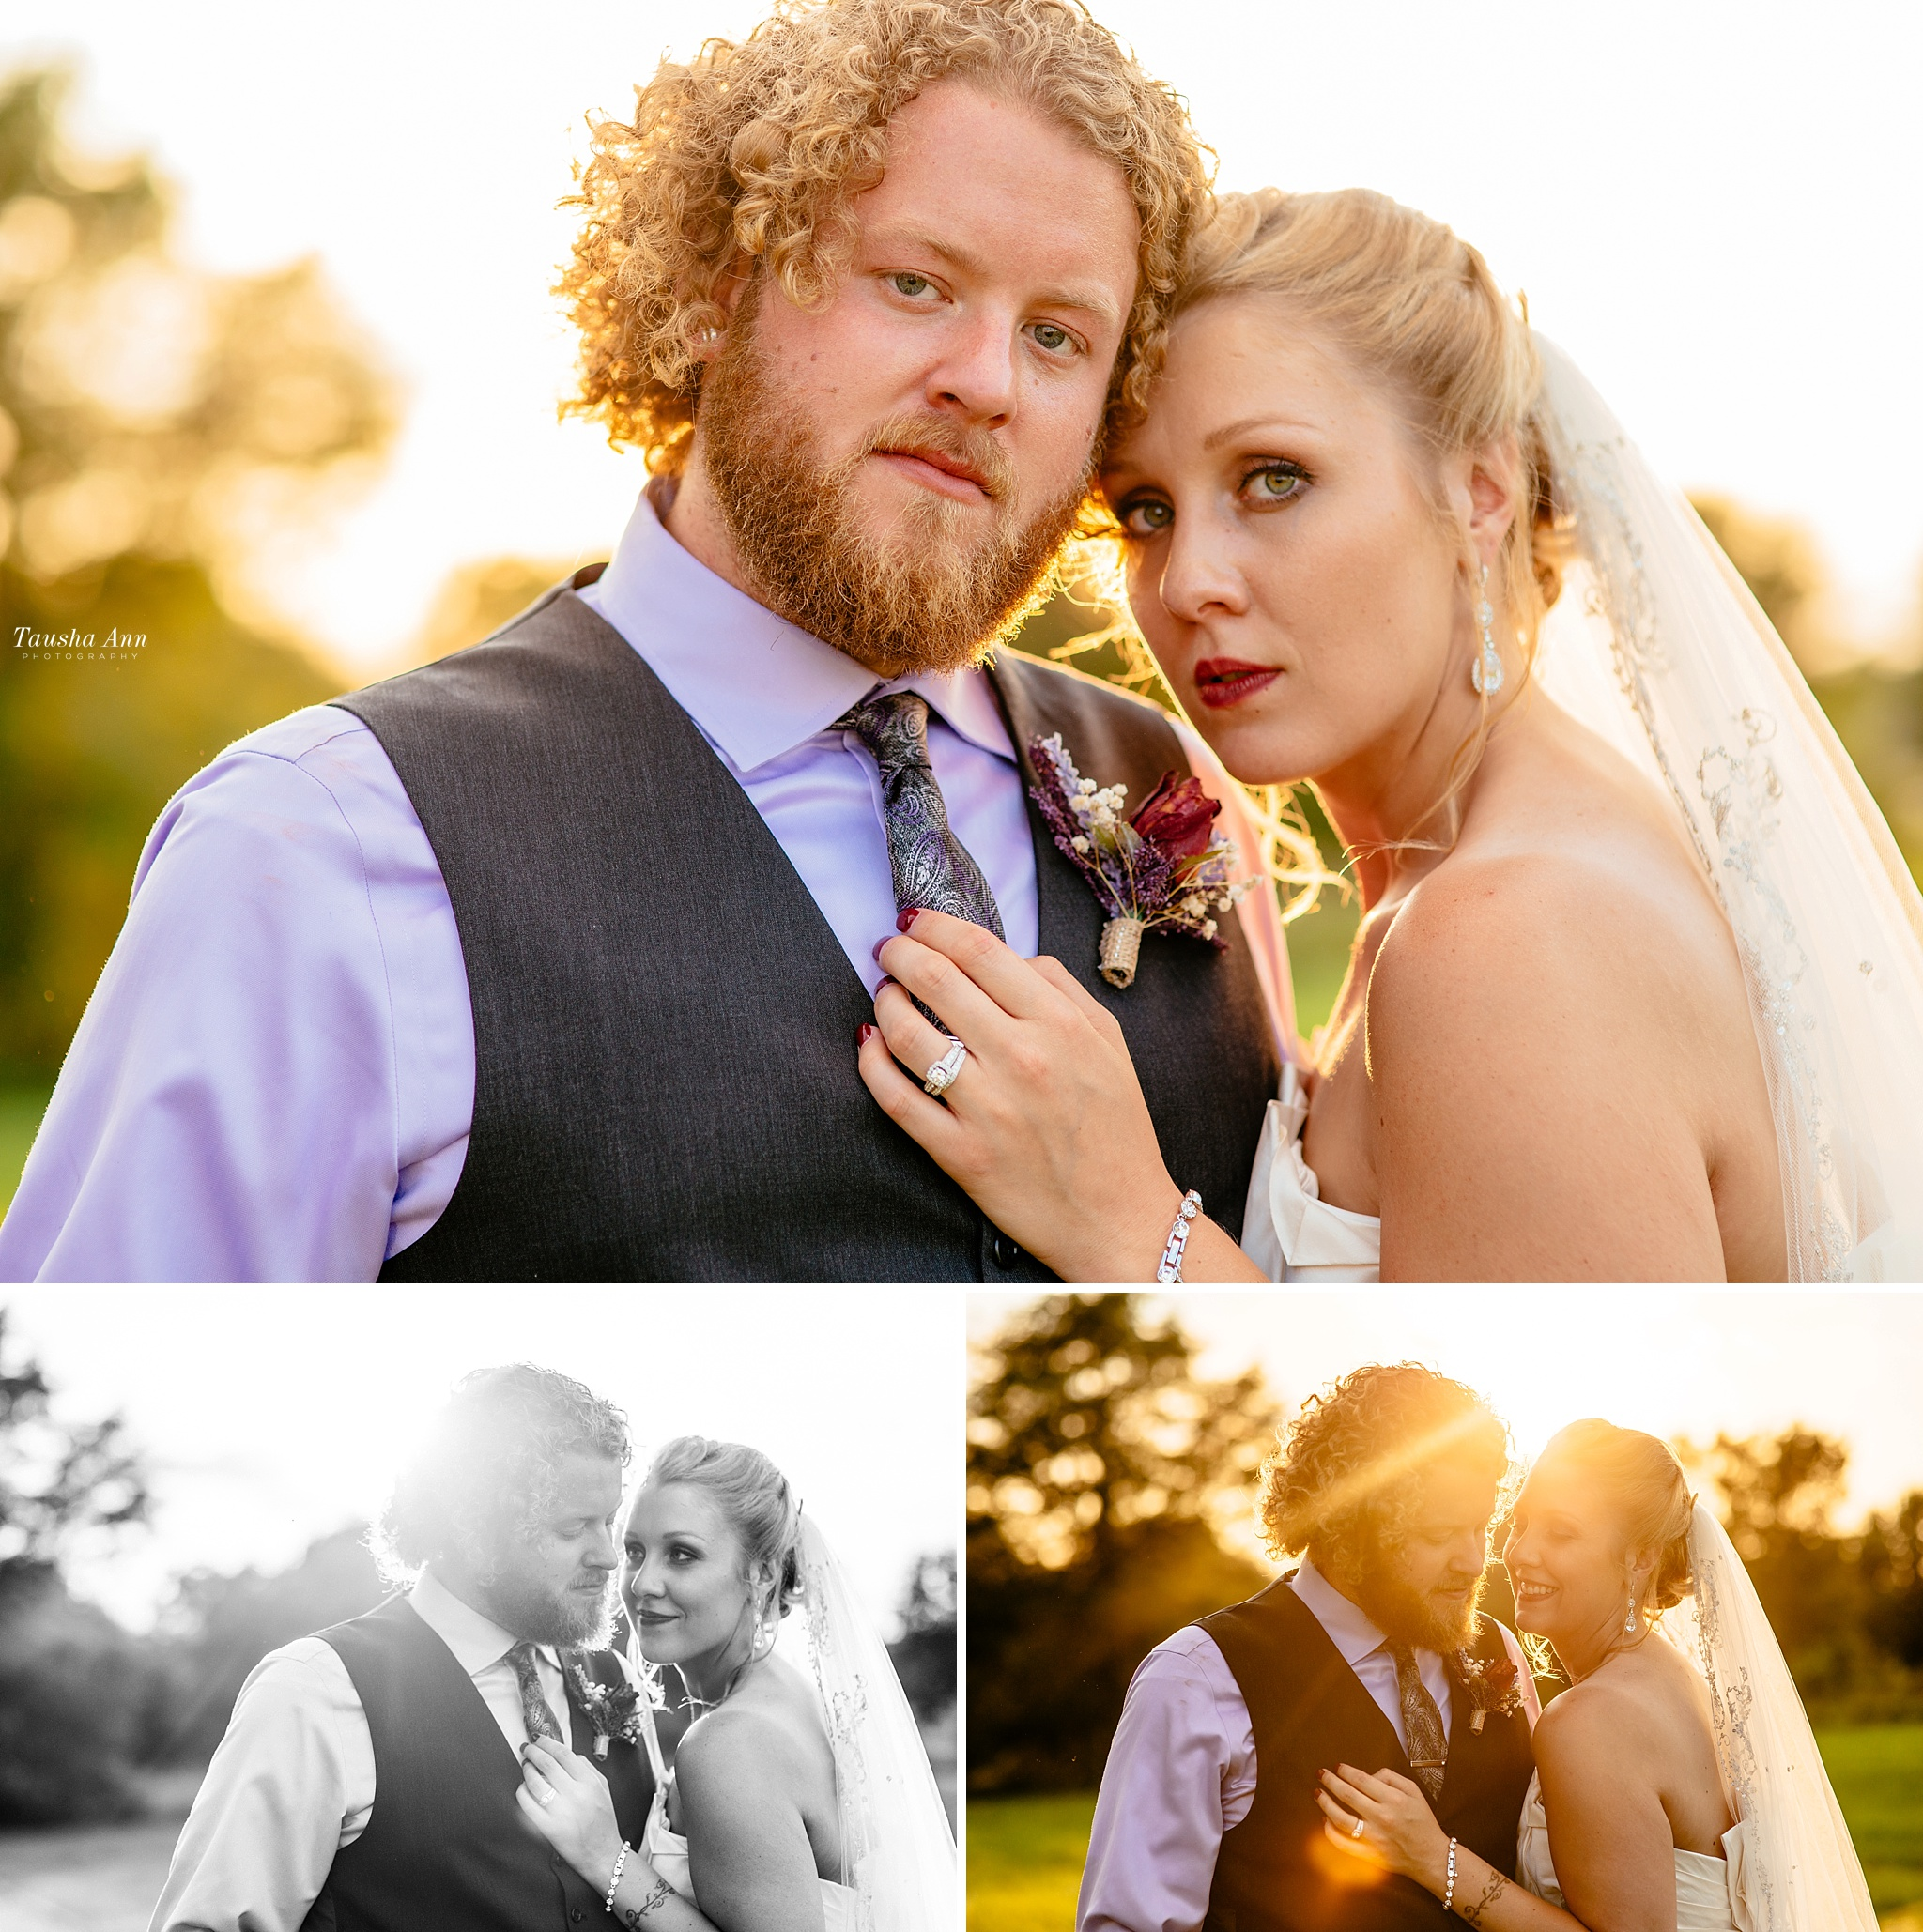 Backlit by the sun. Portrait of Bride and groom. Close-up. Taken at The Shiloh in Fort Wayne, INDIANA.